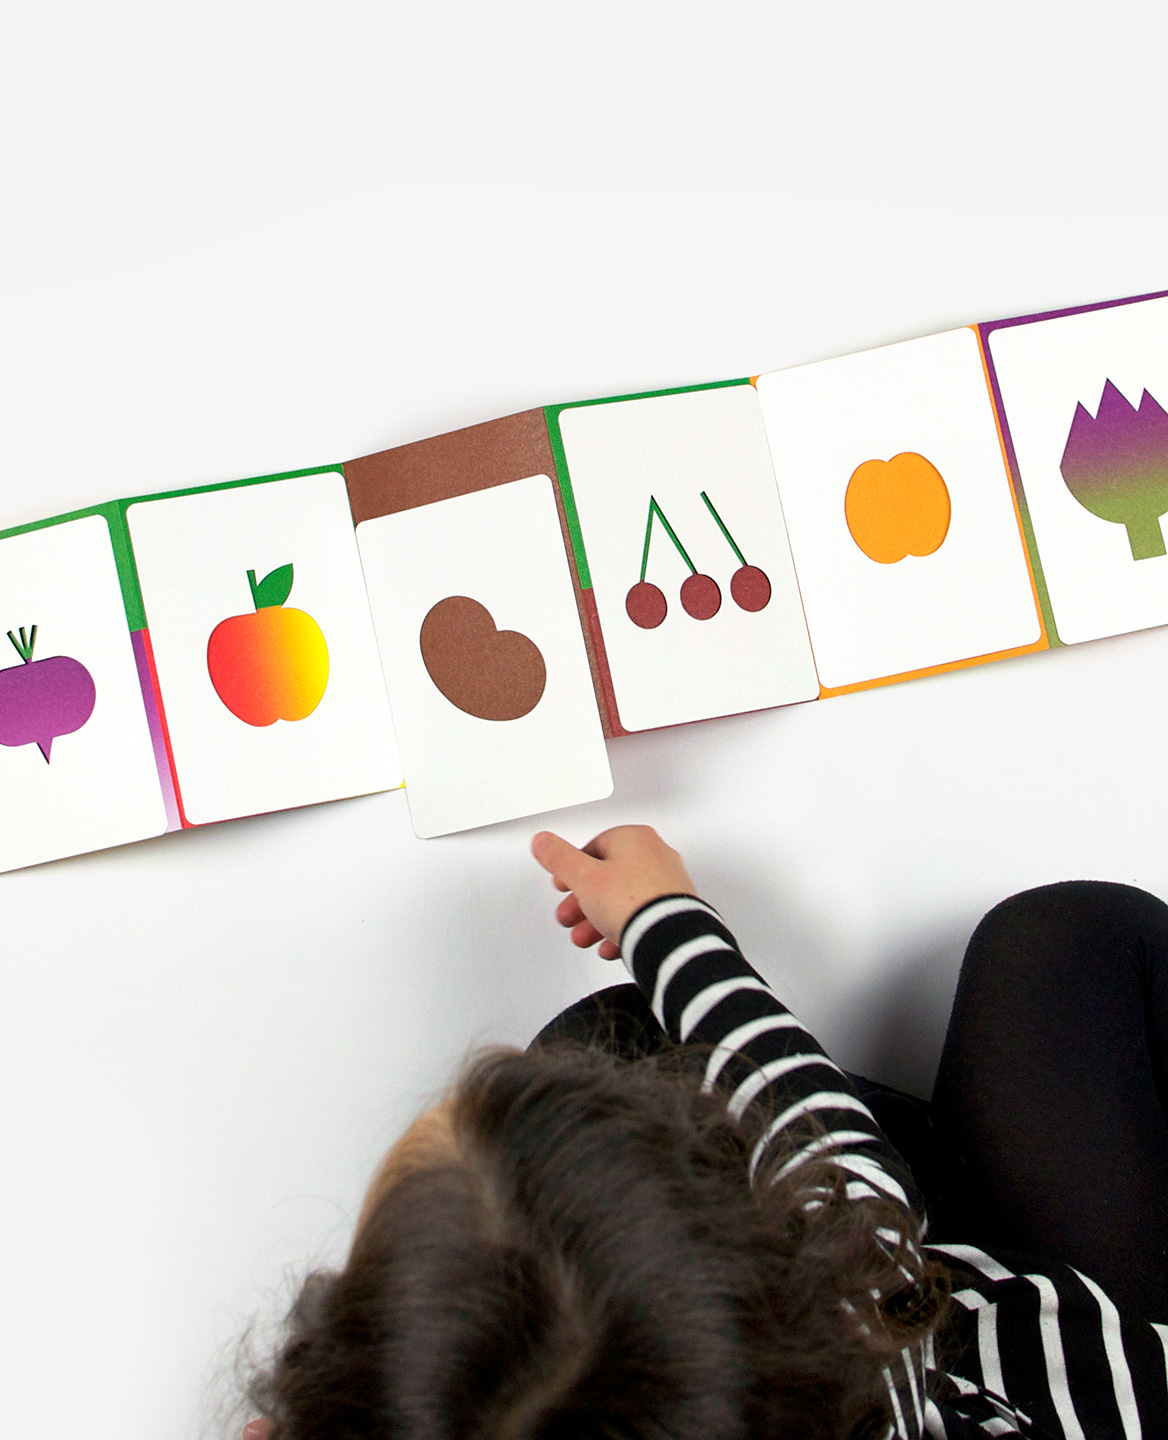 Child playing with the book-game Hello tomato